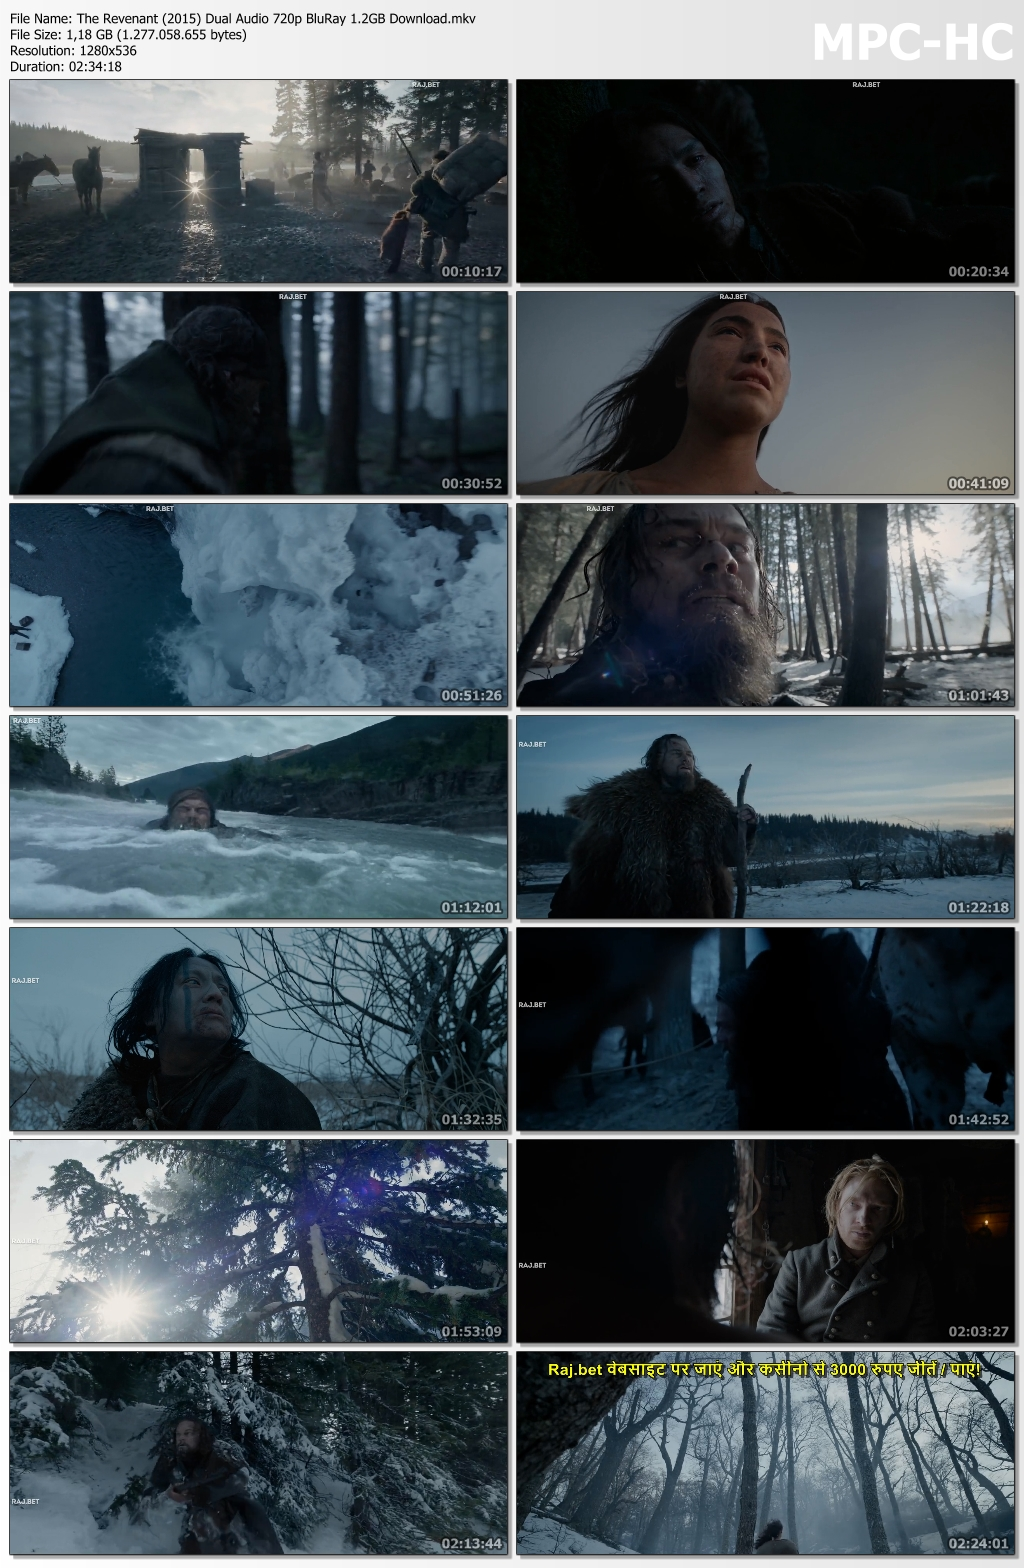 The-Revenant-2015-Dual-Audio-720p-Blu-Ray-1-2-GB-Download-mkv-thumbs